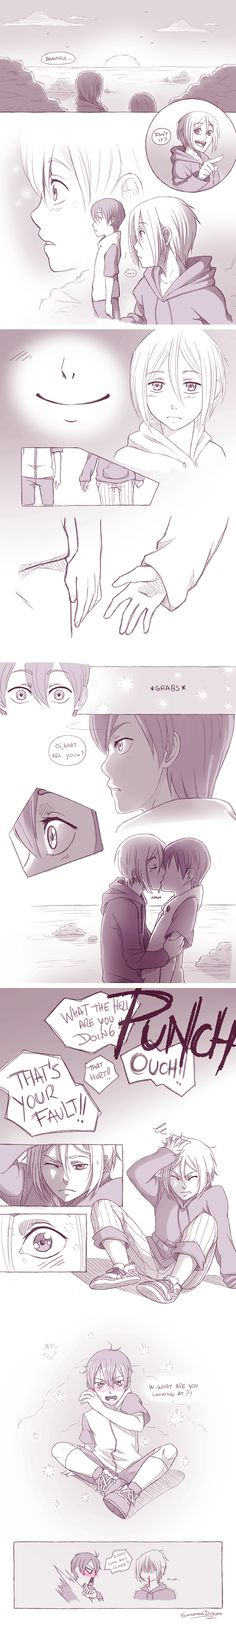 The Sight (RinHaru Mini-Doujin) by *SorceressDream on deviantART